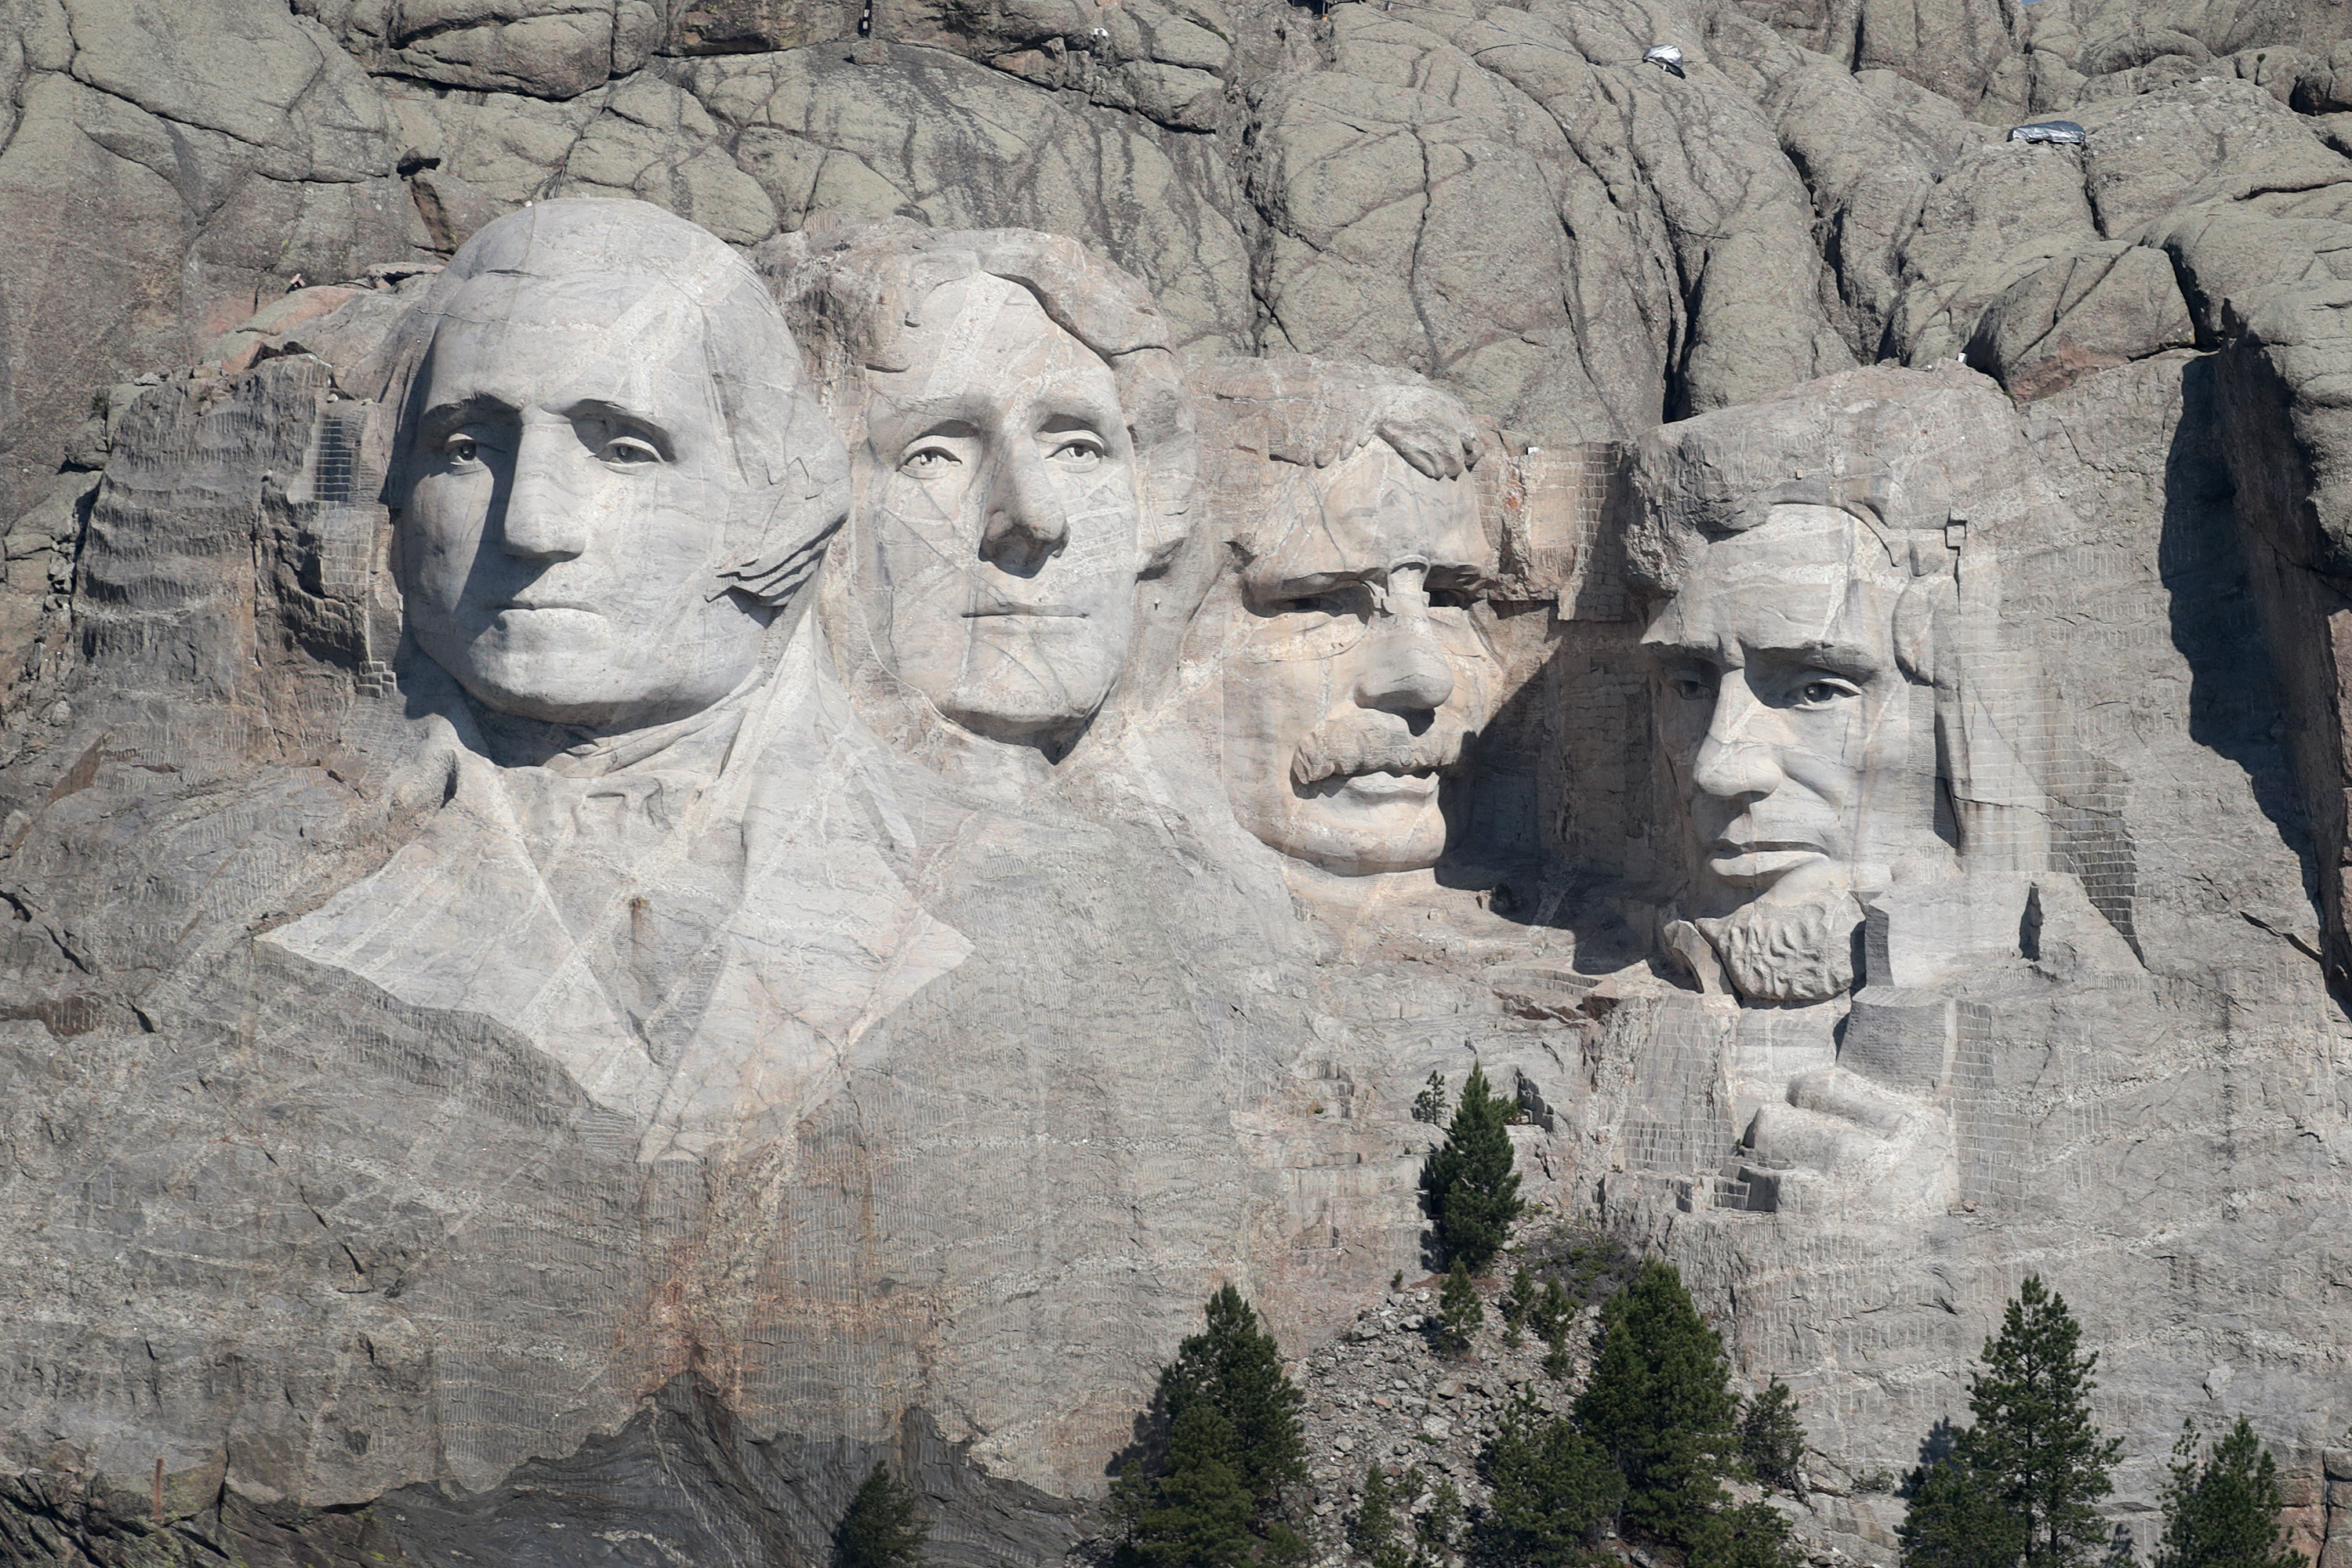 South Dakota's pitch to keep up July 4 celebration at Mt. Rushmore resurfaces at Haaland confirmation hearing